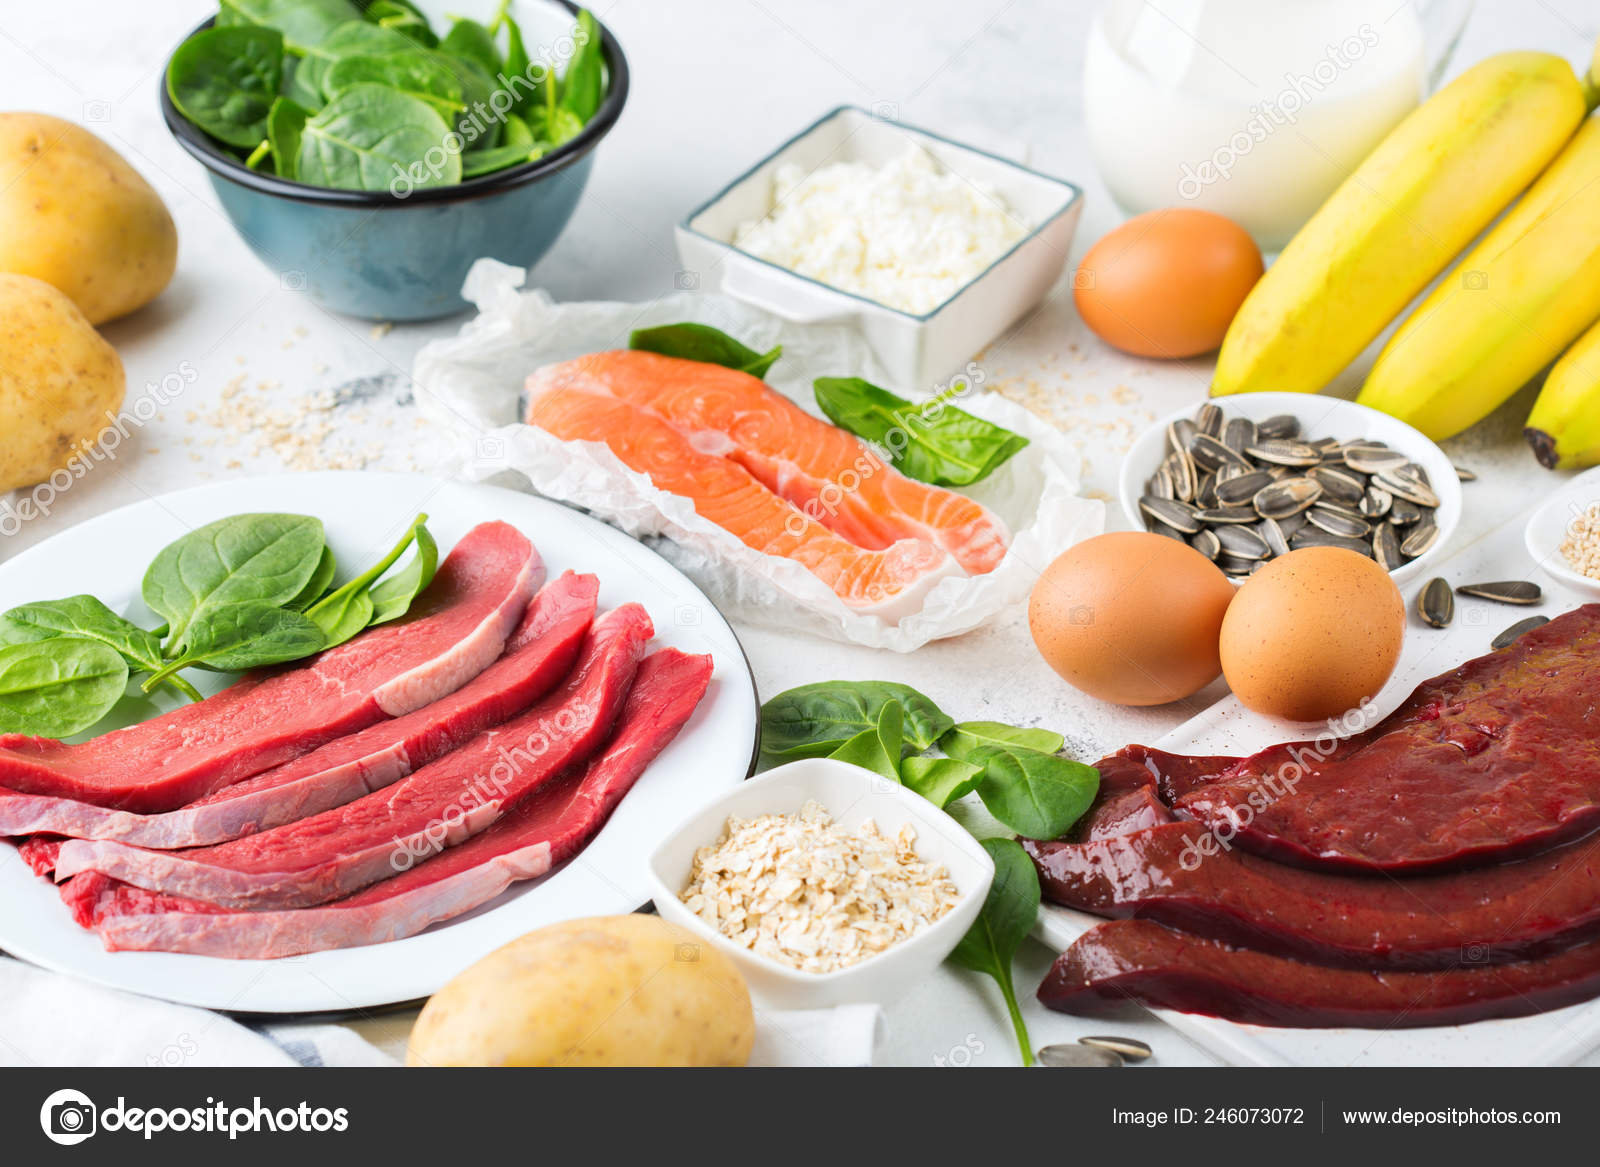 Balanced Diet Nutrition Healthy Eating Concept Food Sources